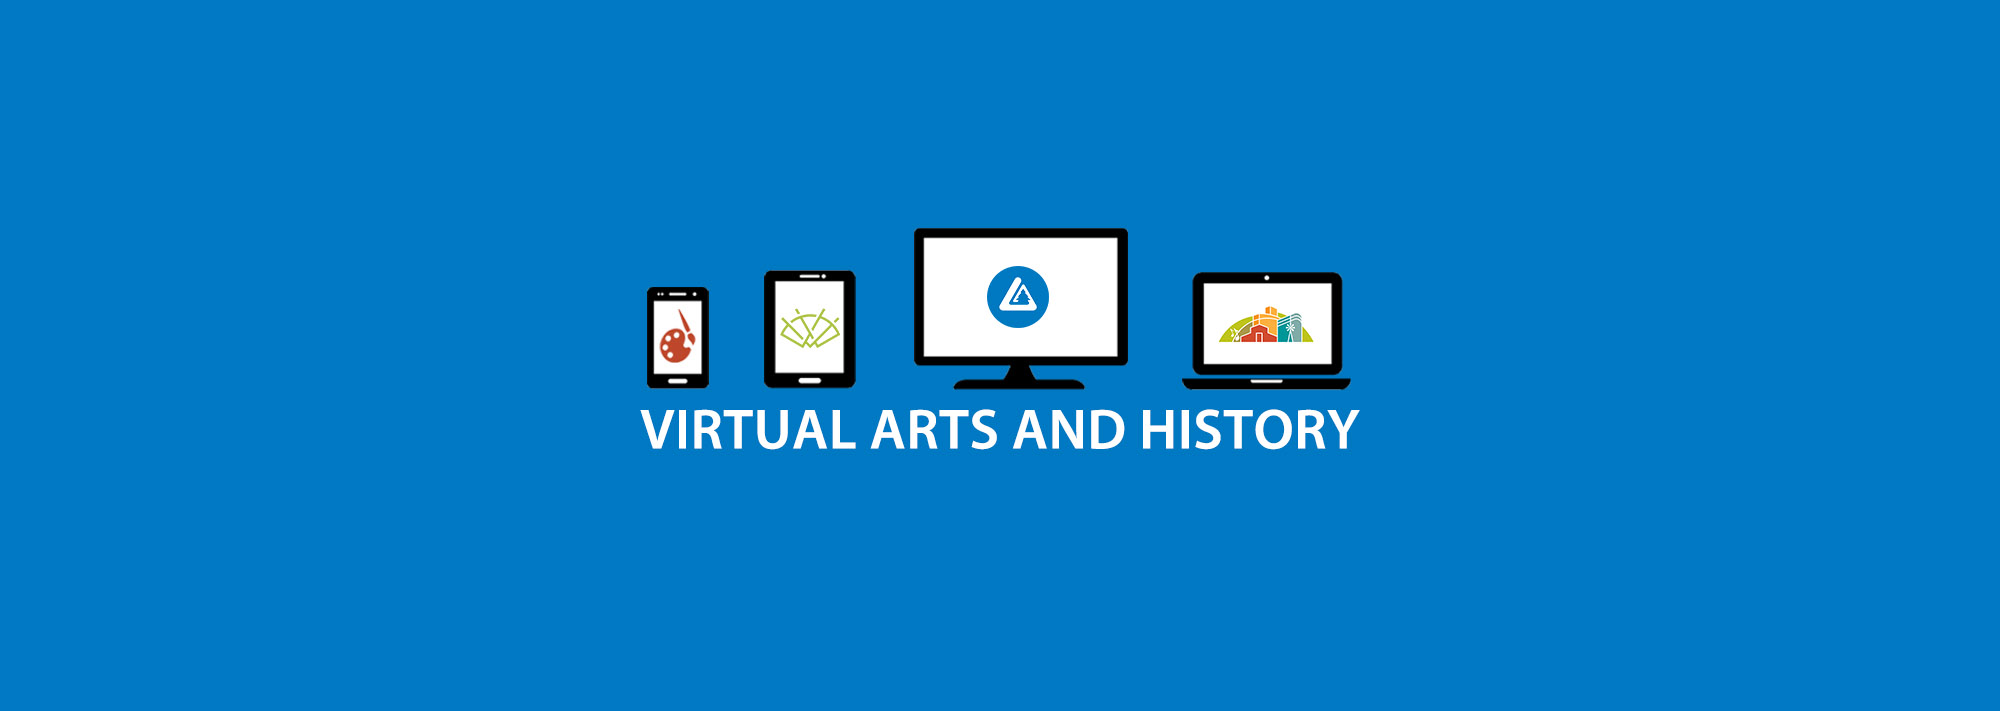 Virtual Arts and History